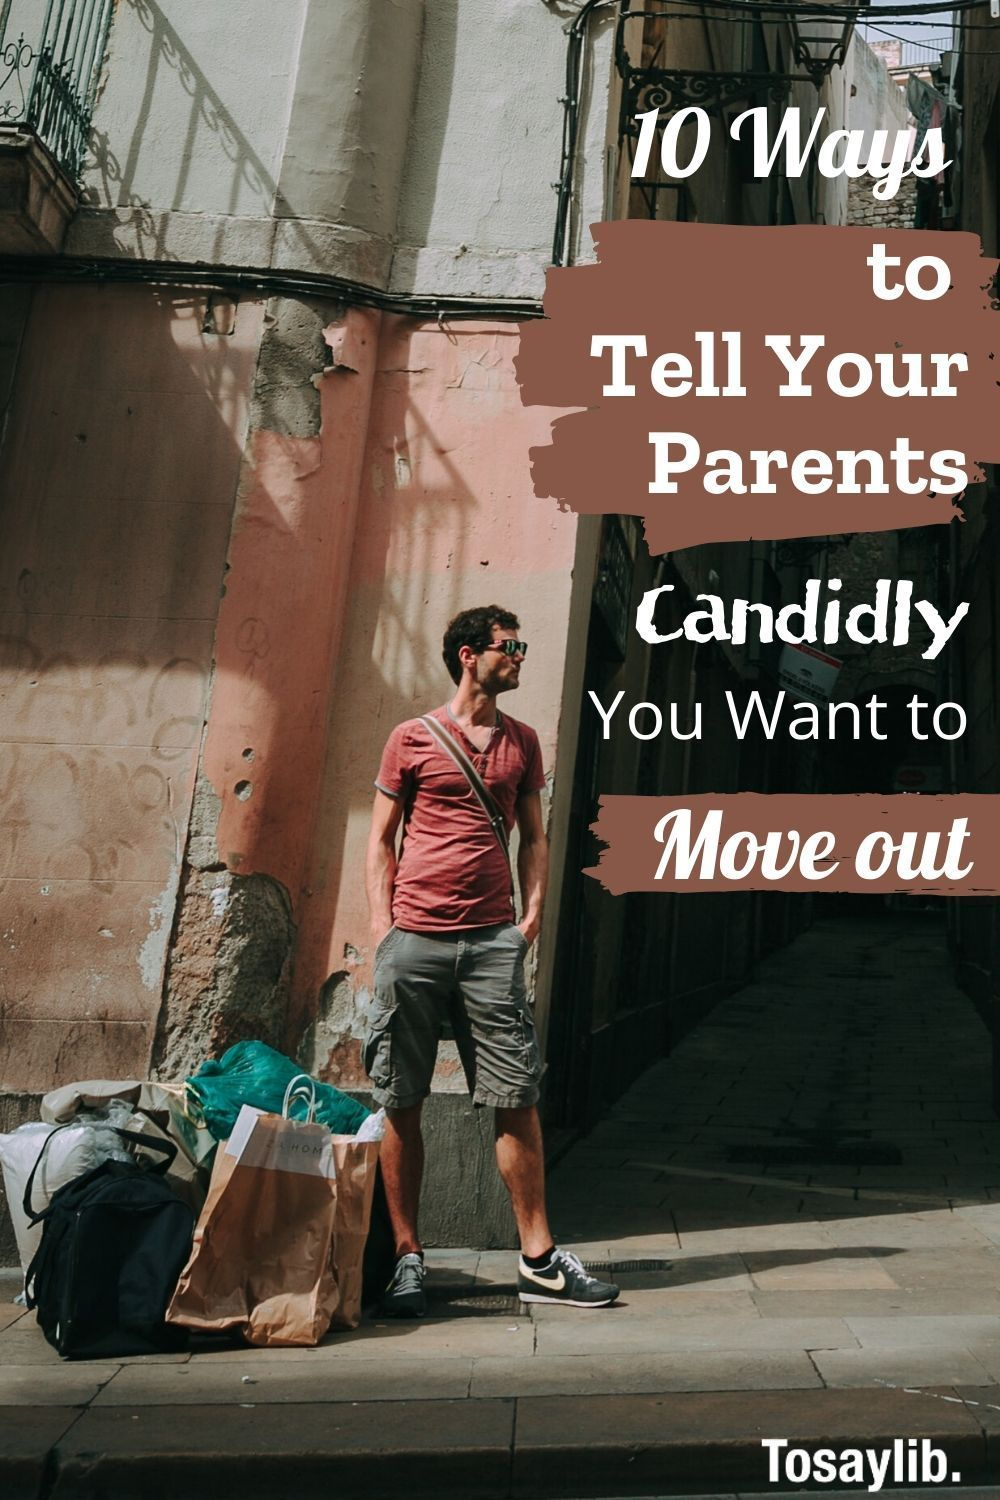 10 ways to tell your parents candidly you want to move out